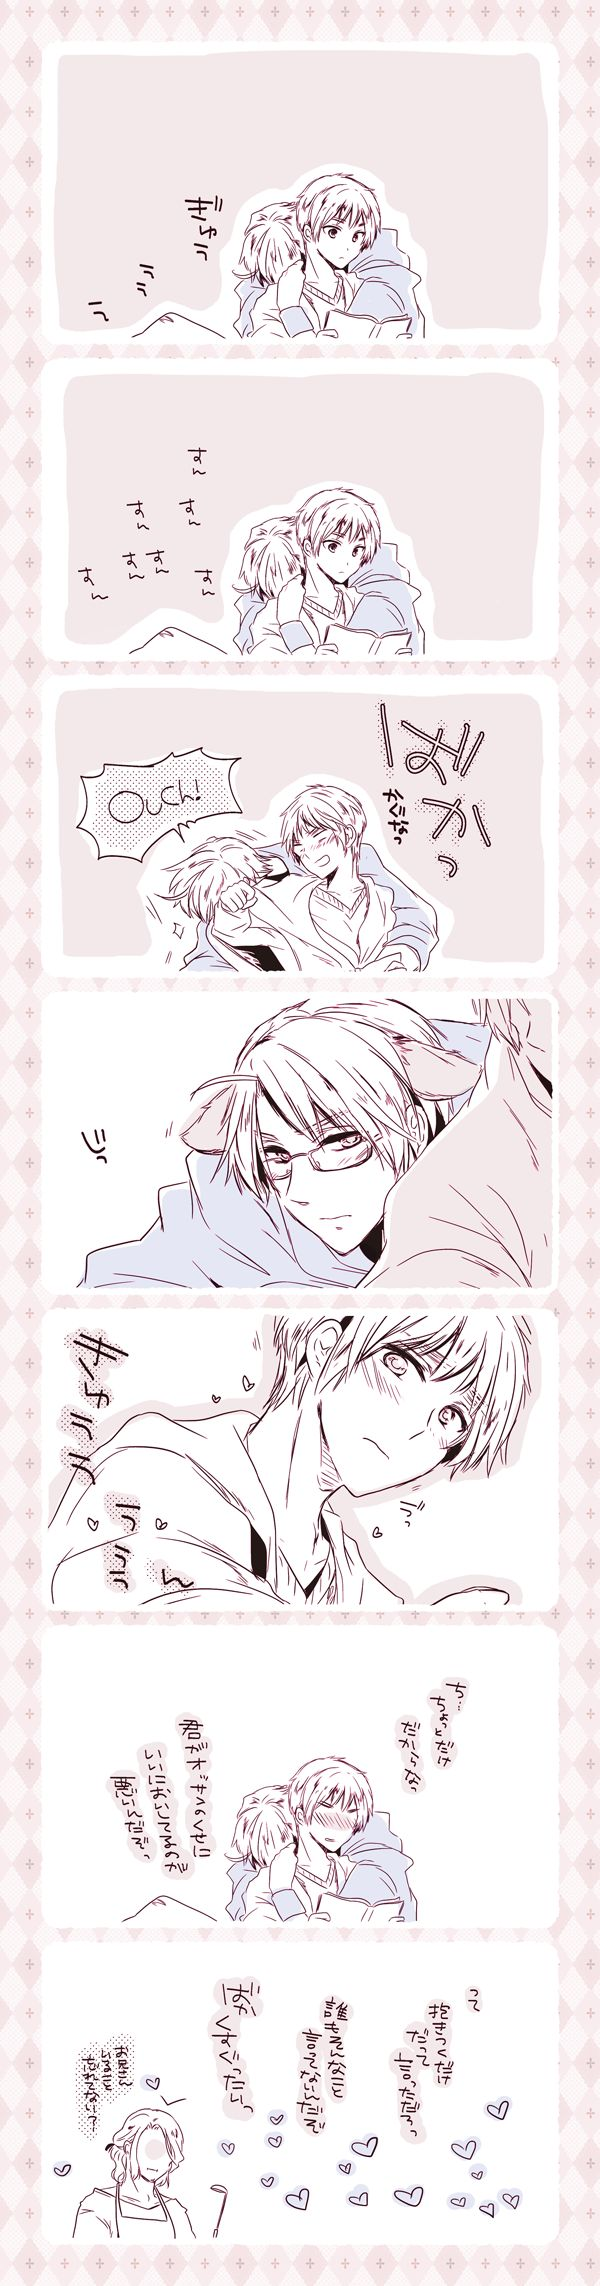 Hetalia - America / England (UsUk) <<< ((So I guess this is the continuation of that one pic